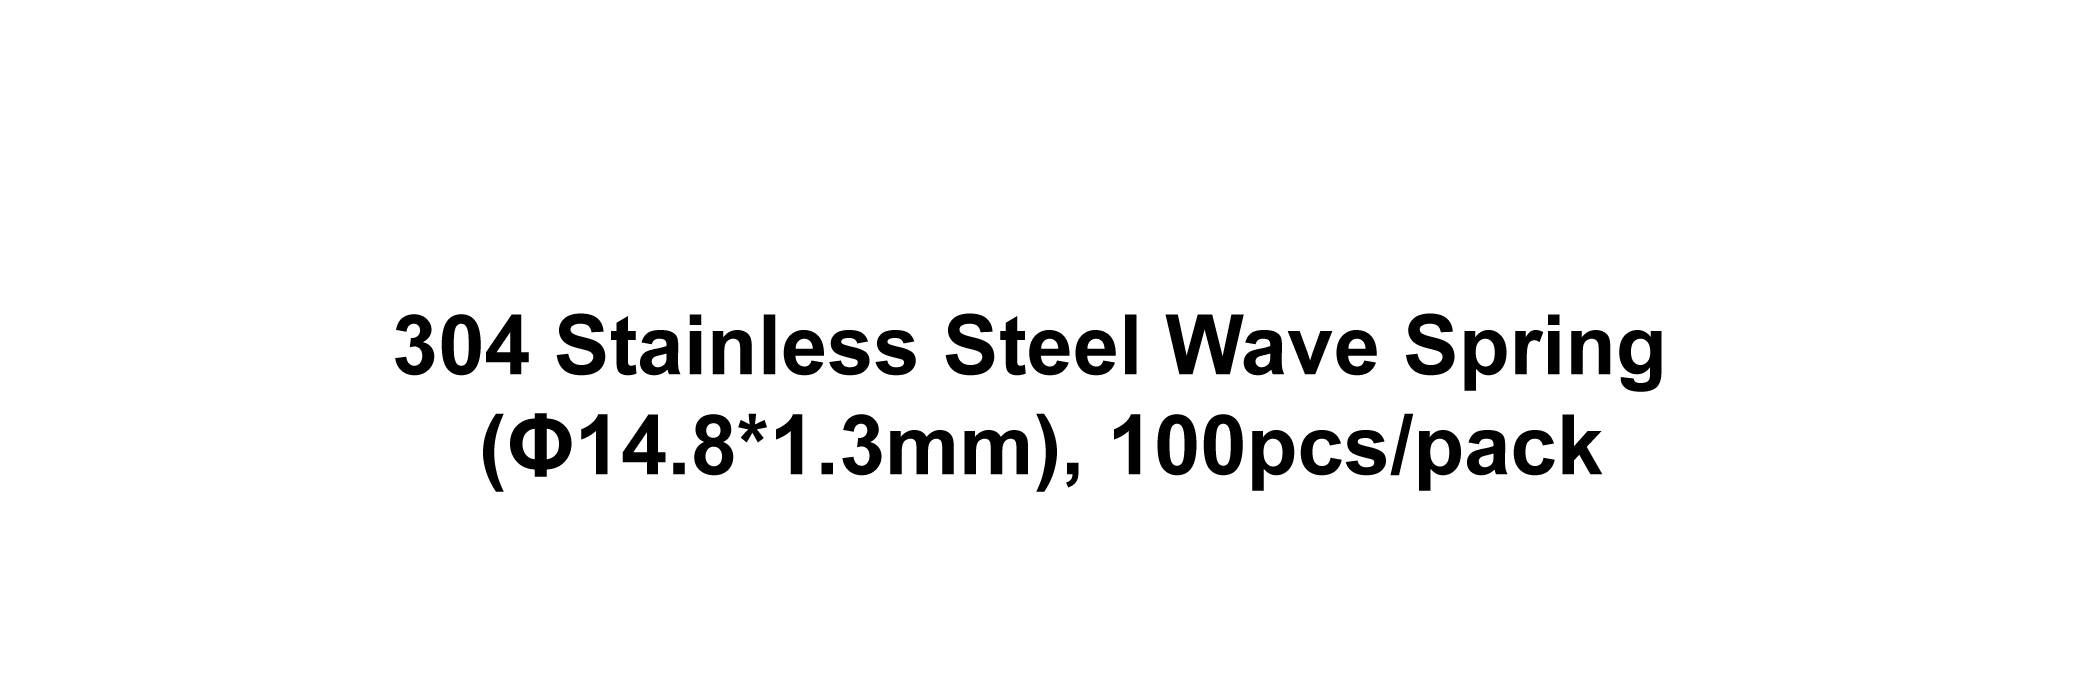 304 Stainless Steel Wave Spring (Φ14.8*1.3mm), 100pcs/pack